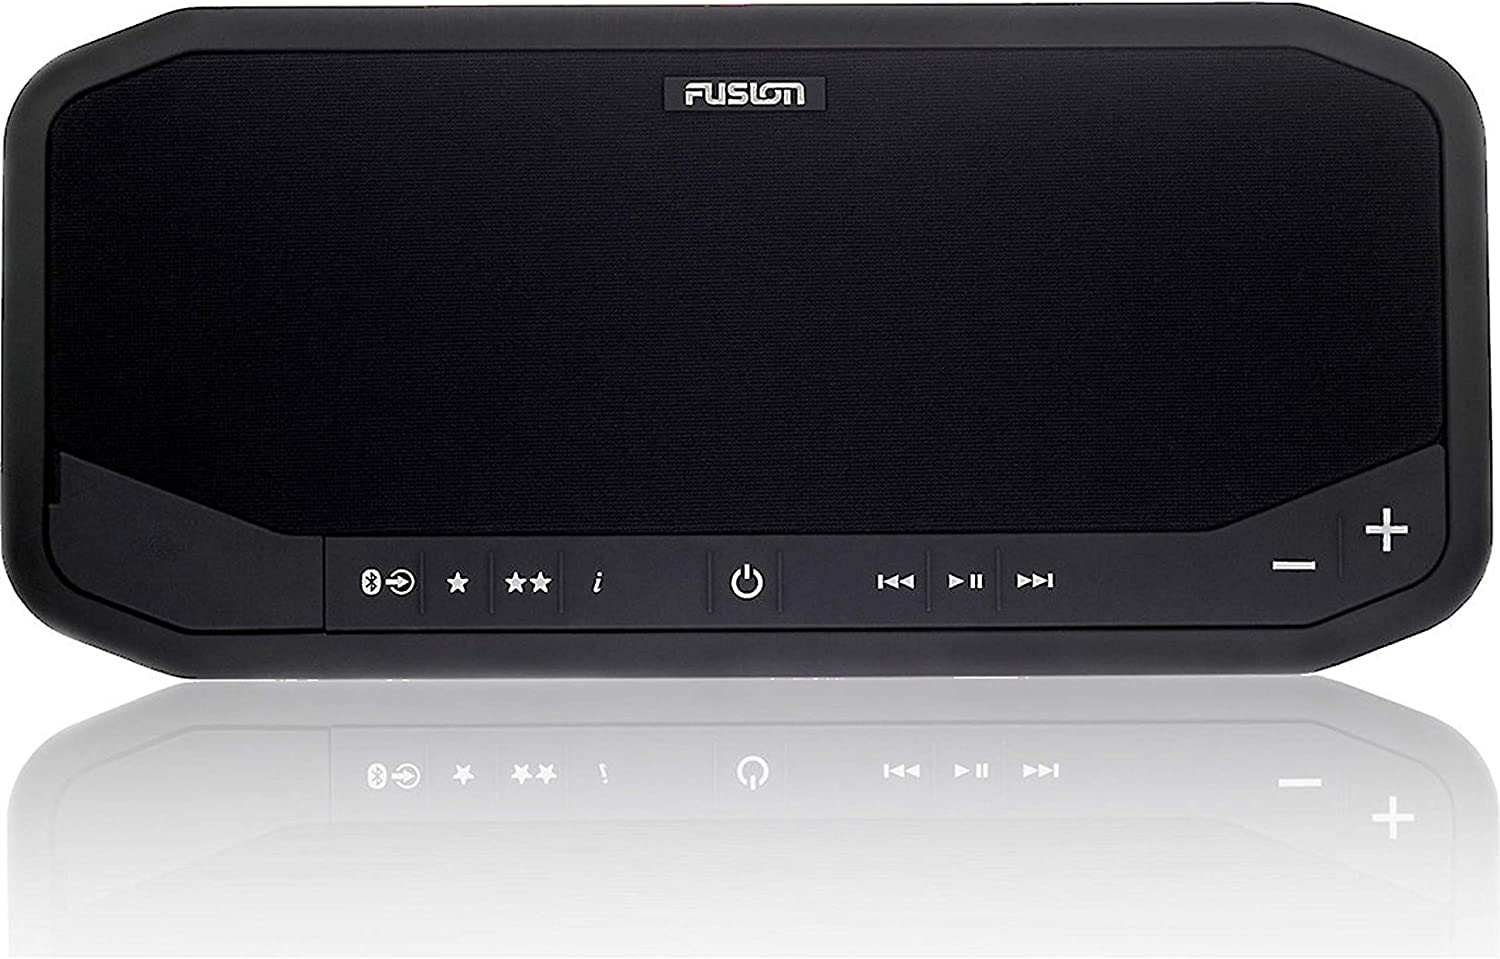 Fusion PSA302B PanelStereo AllinOne Audio Entertainment System with blueetooth